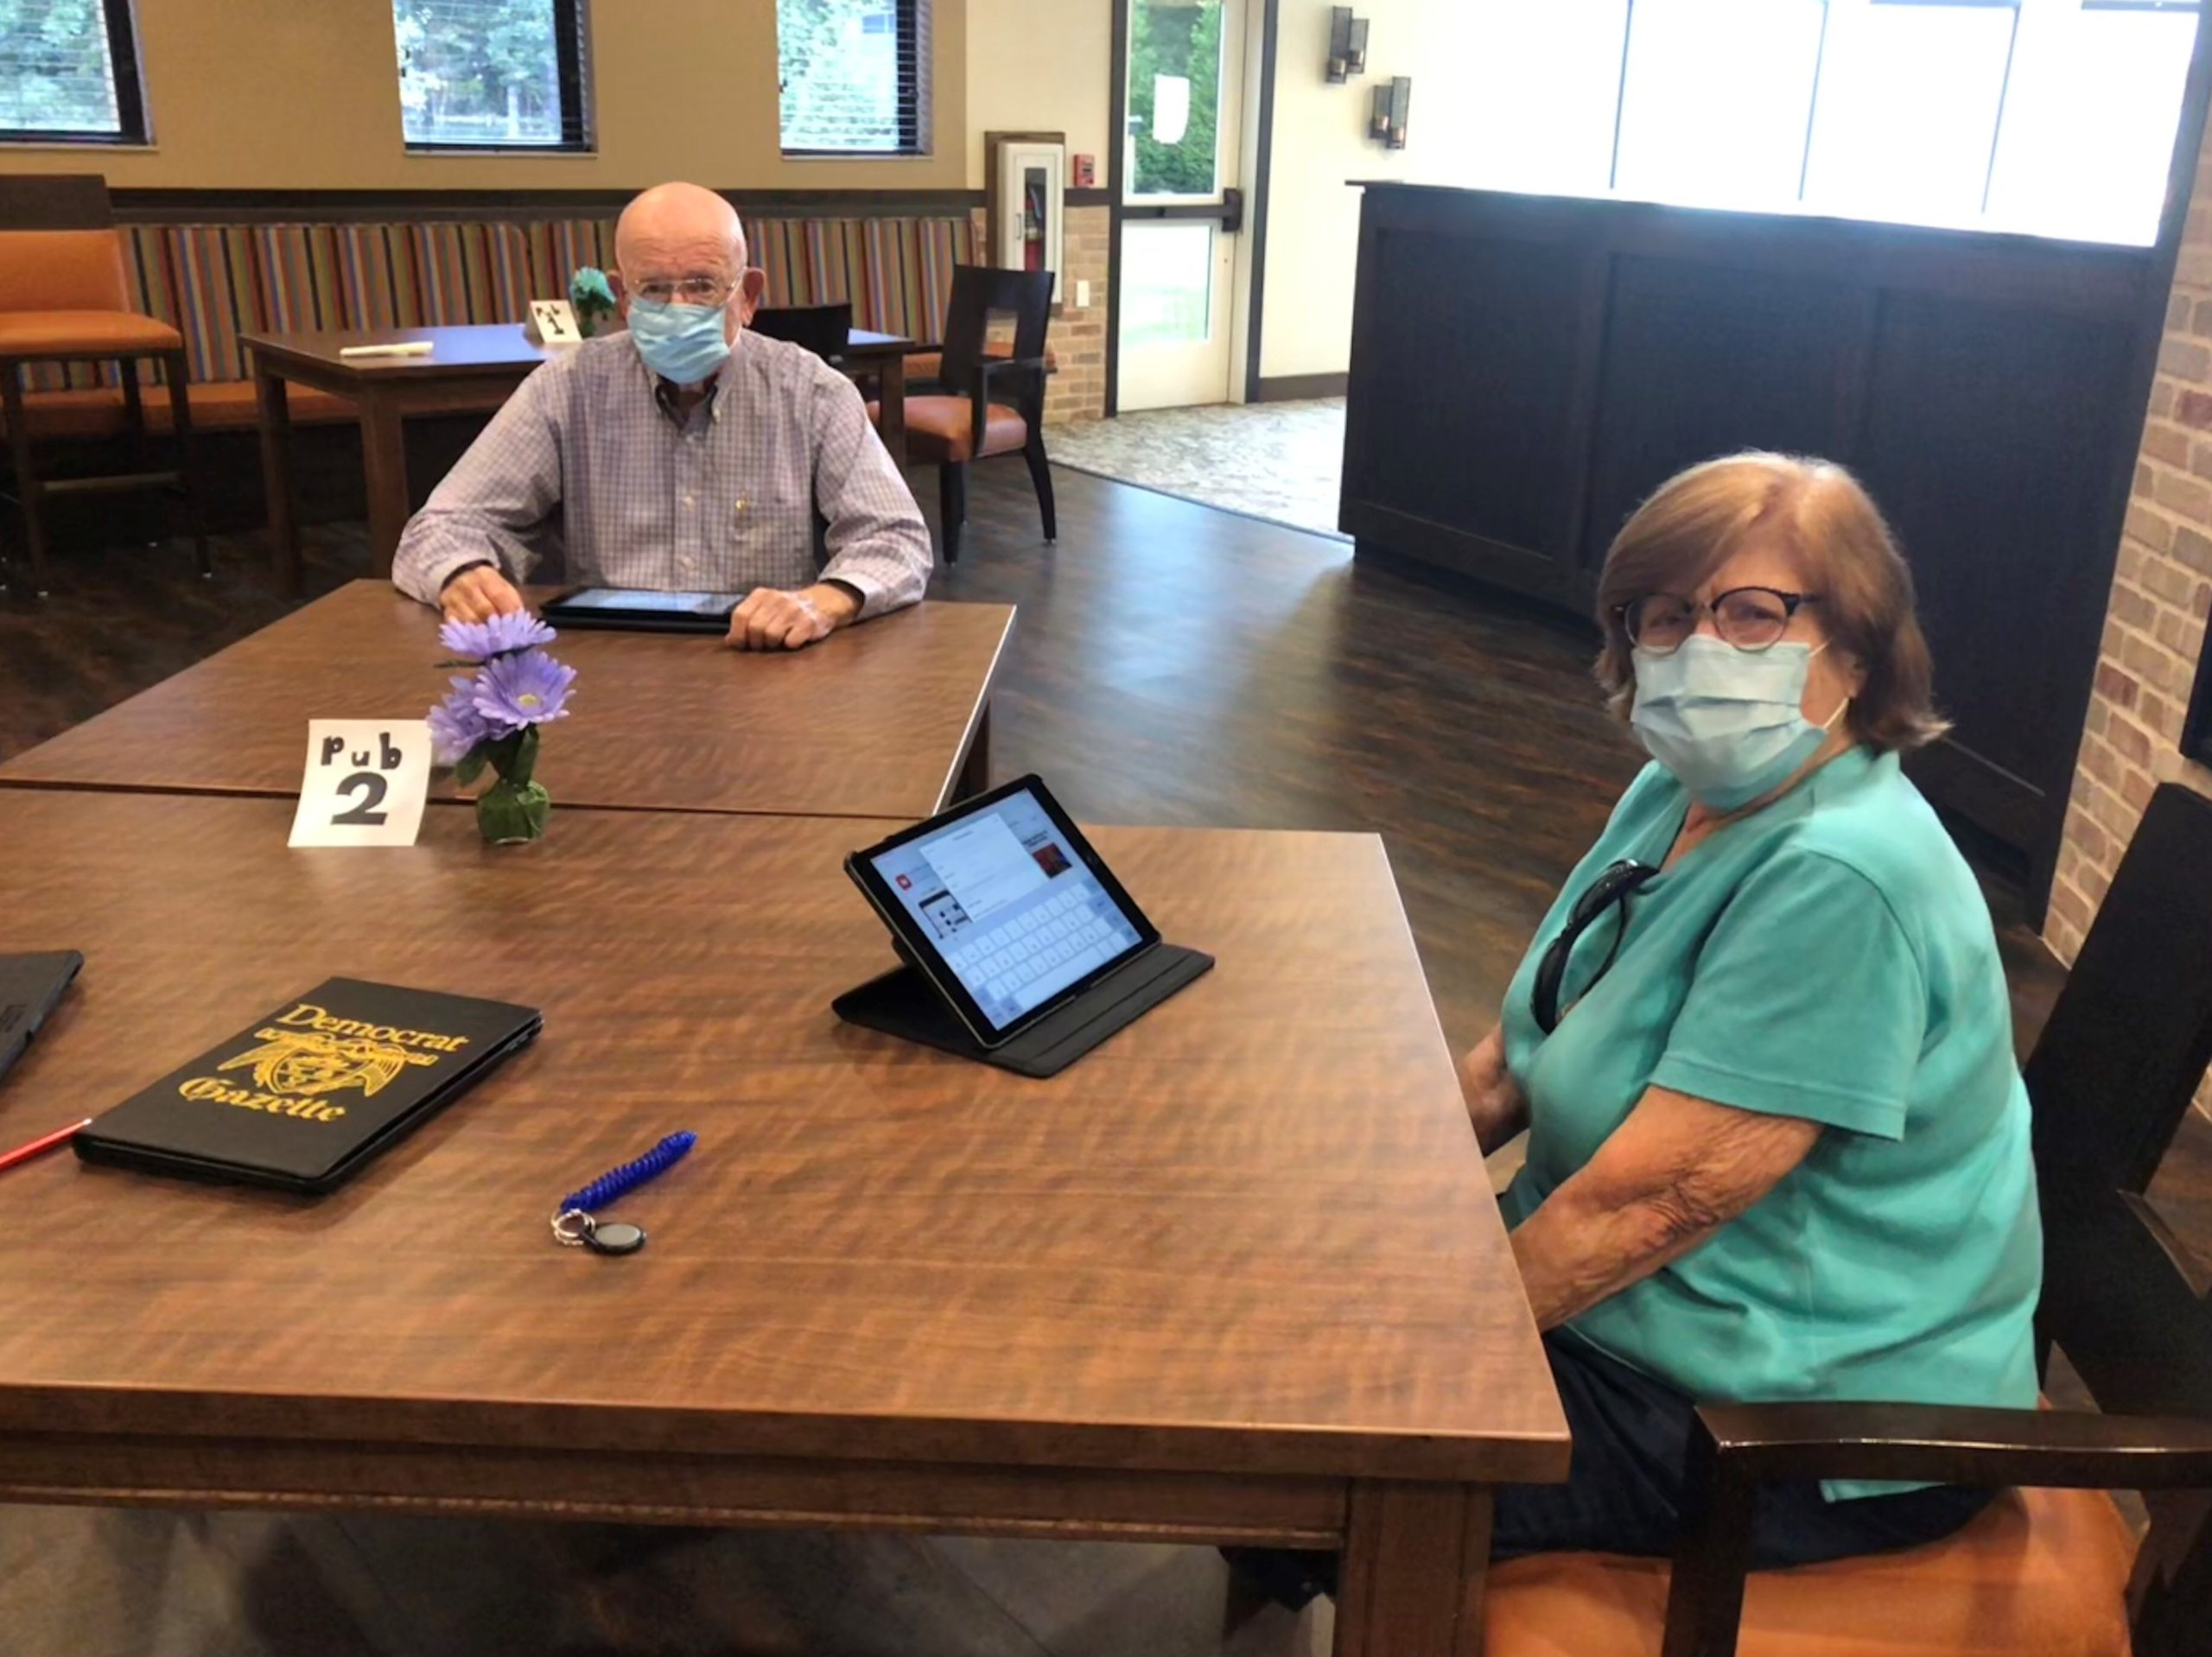 Beginning in September, residents met once a week with LEC, Lindsay to learn the basics of working their IPADS and electronic devices. They will be tech savvy and smart seniors before they know it!